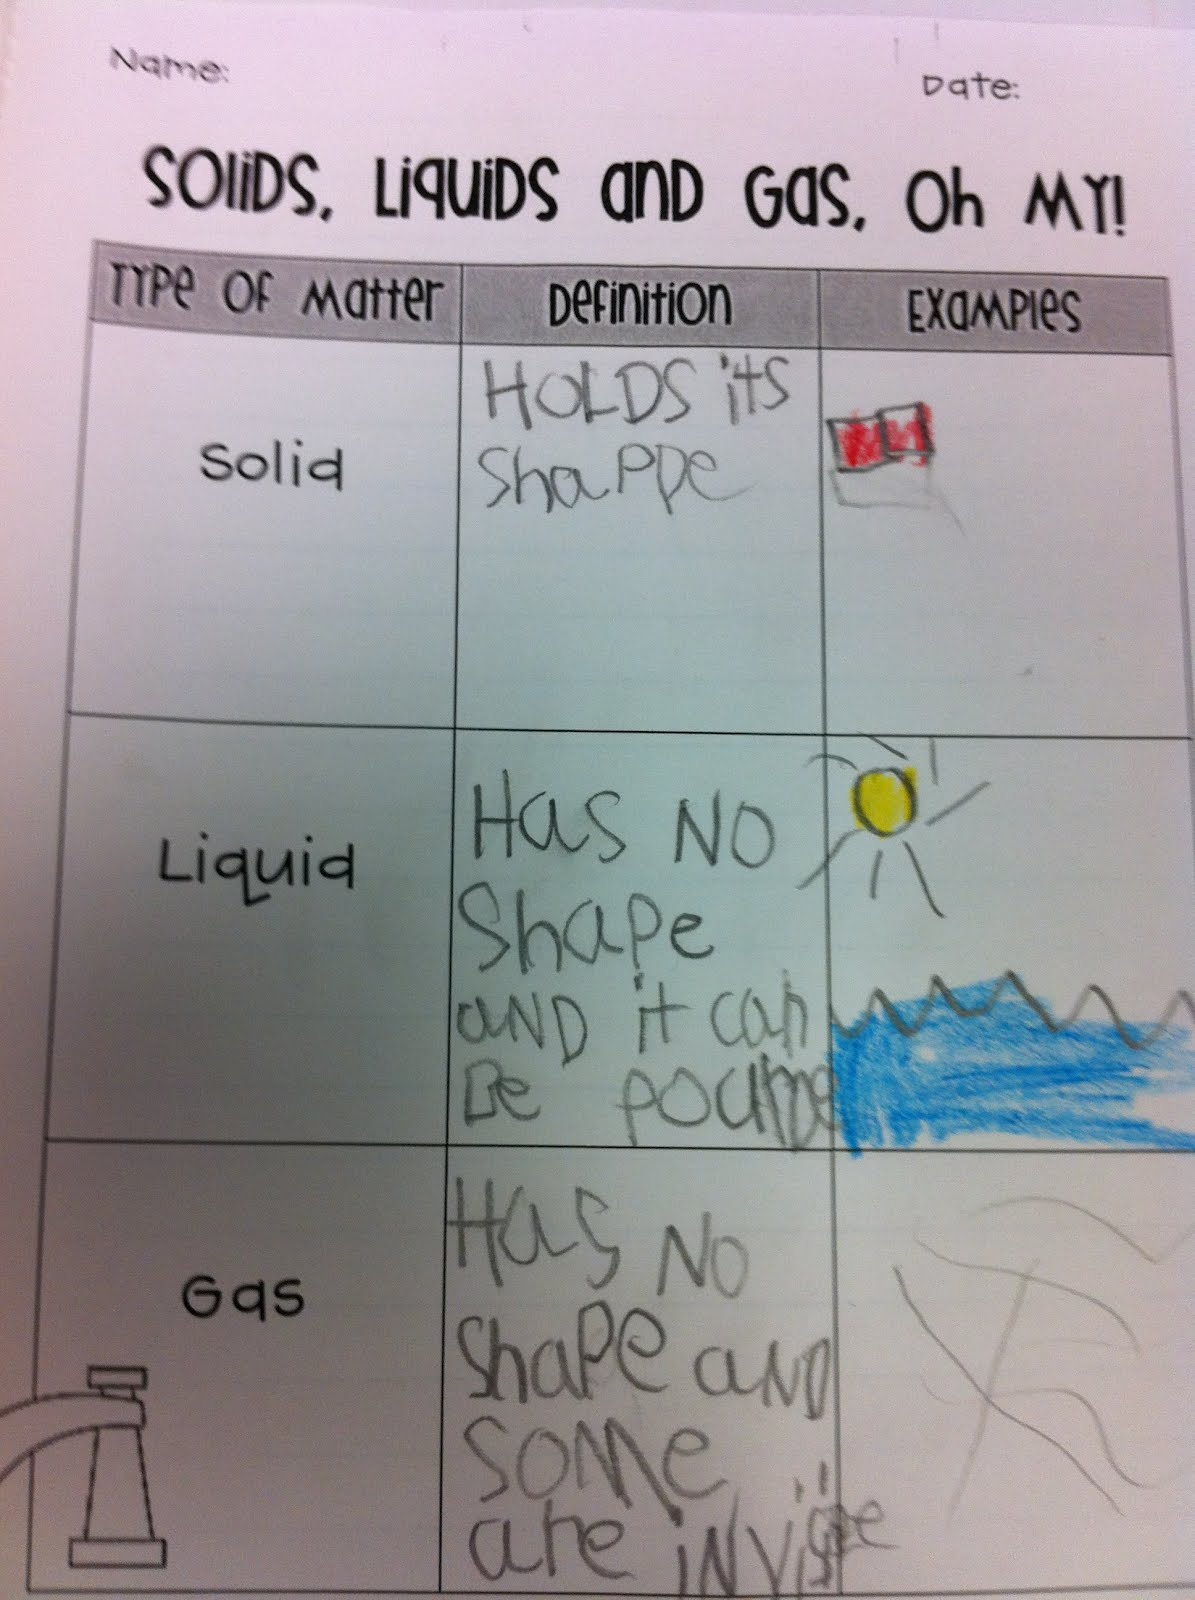 Examples of Solid Matter http://teacherkimbo.blogspot.com/2012/02/whats-matter.html